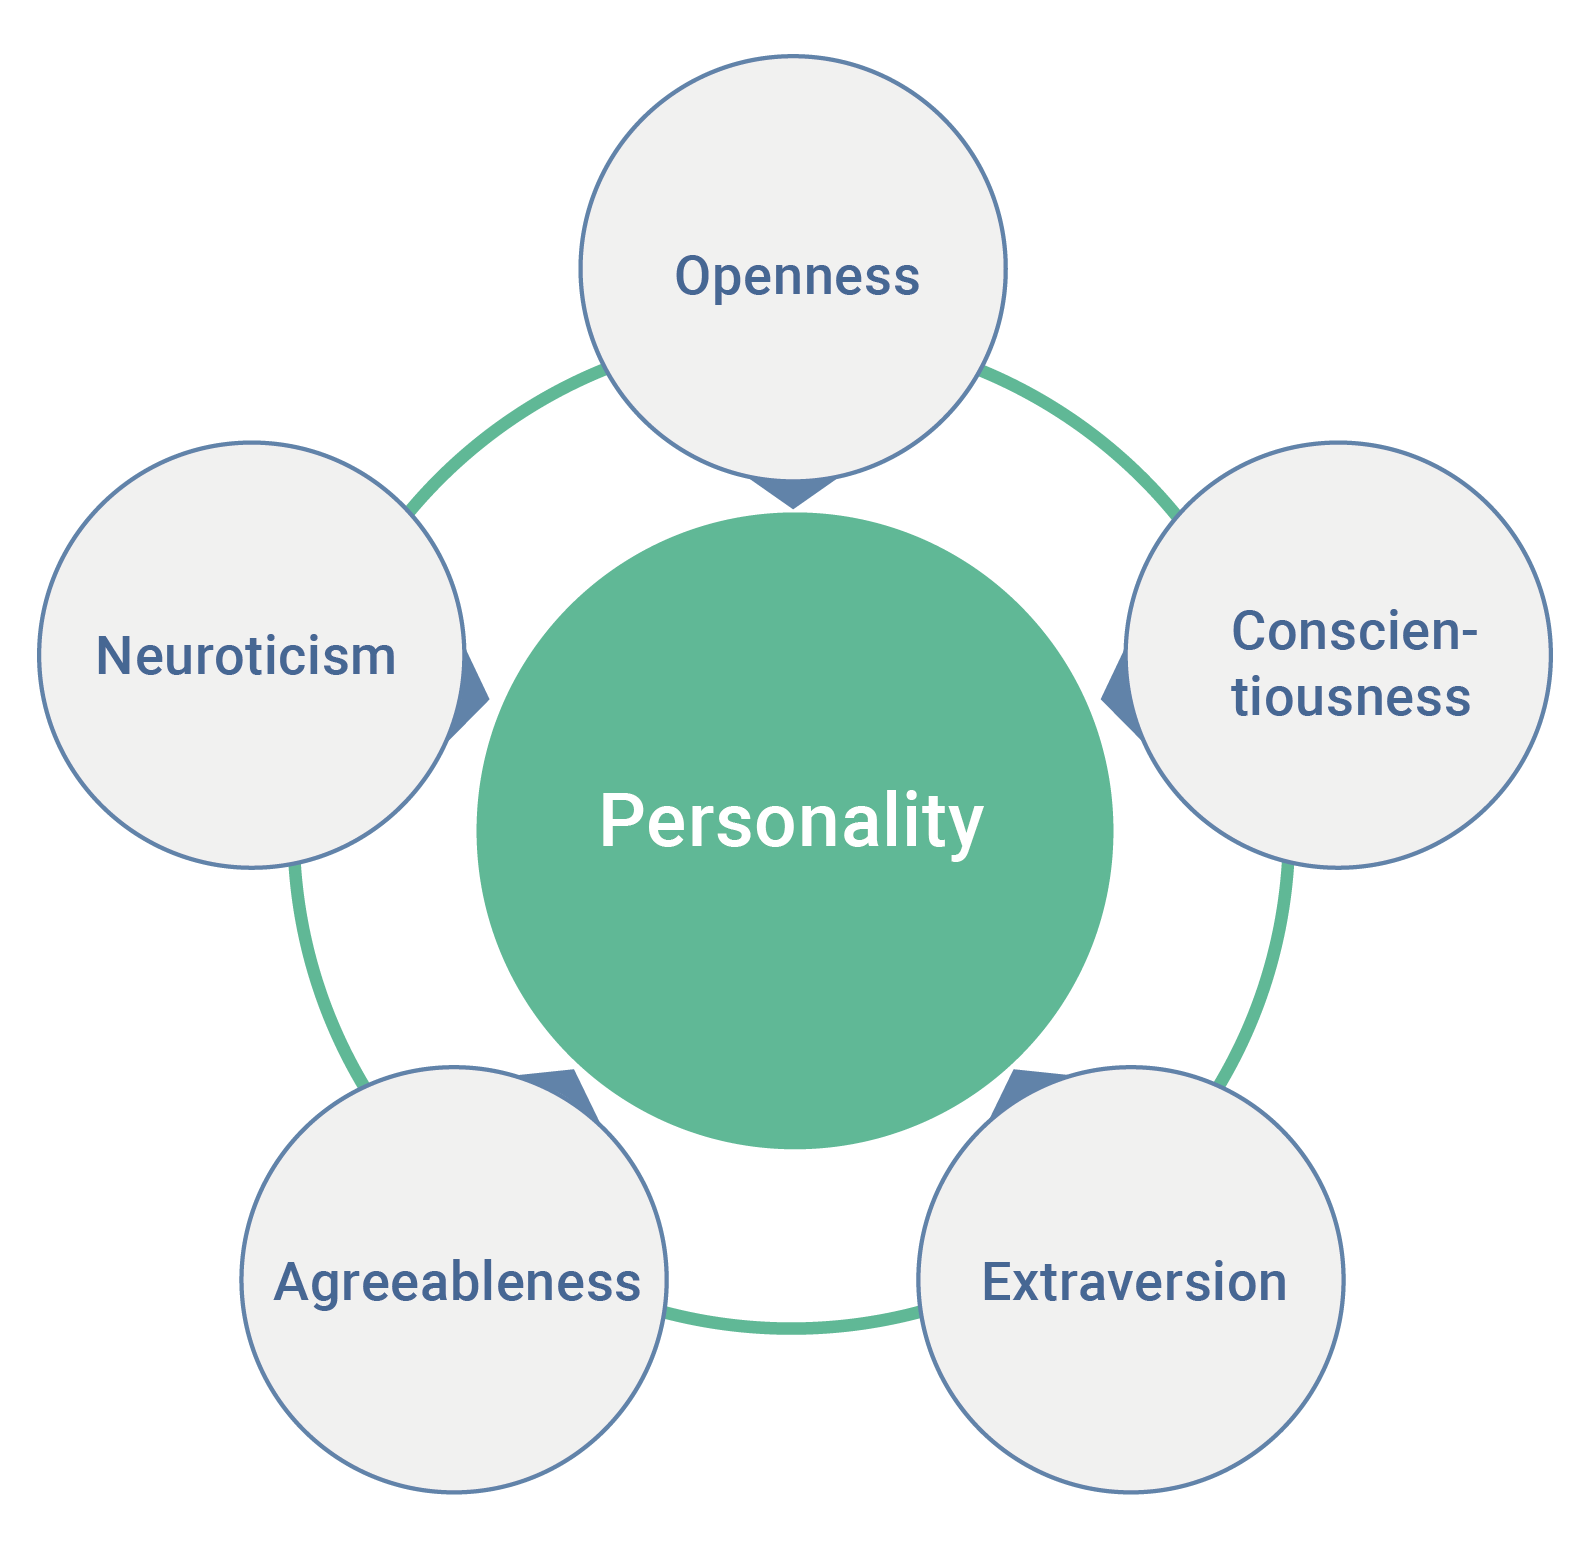 New Global Study Defines 4 Personality Types From Self